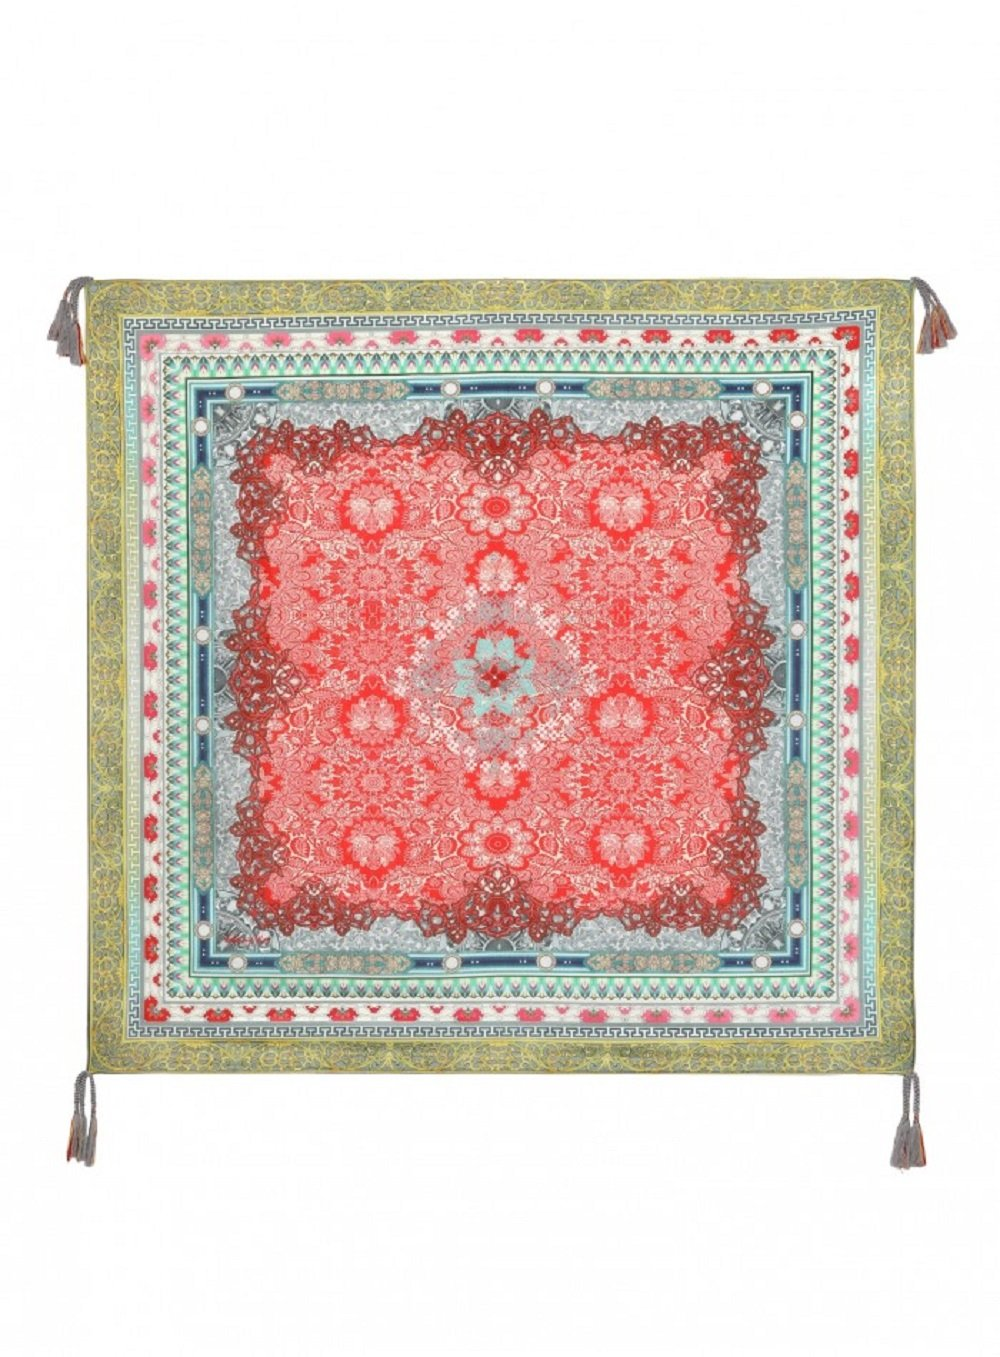 Johnny Was Women's Annabelle Scarf, multi, O/S by Johnny Was